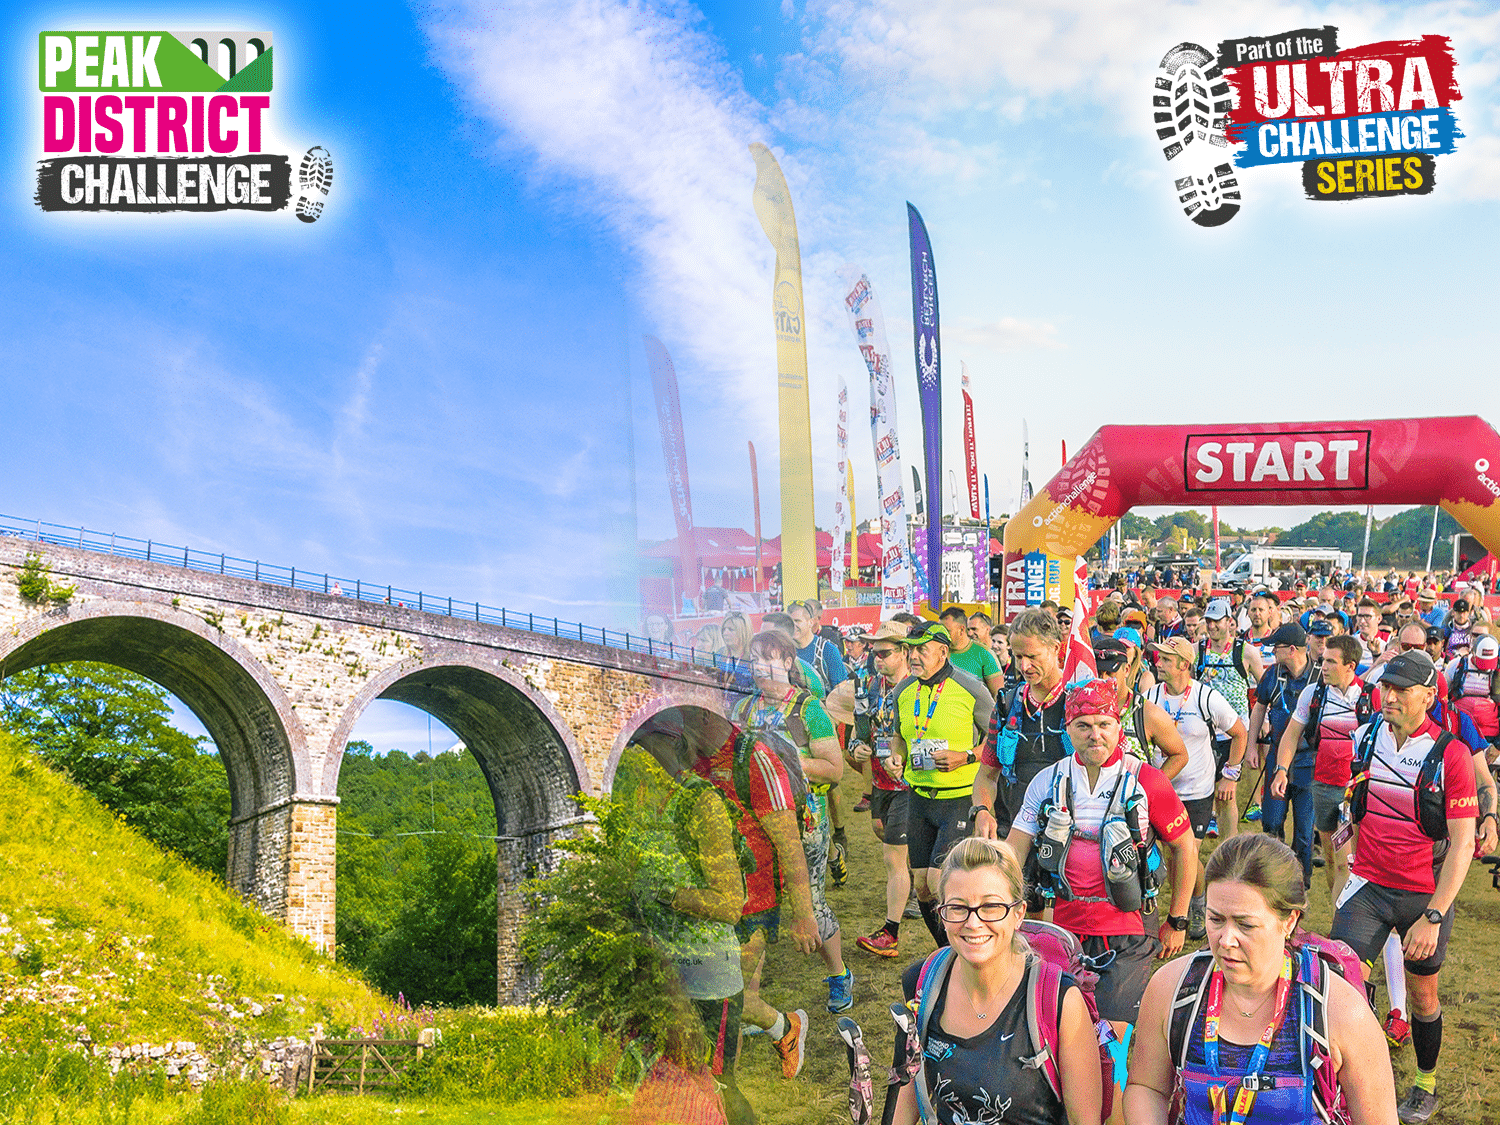 Image shows crowds at the start line with Derbyshire countryside